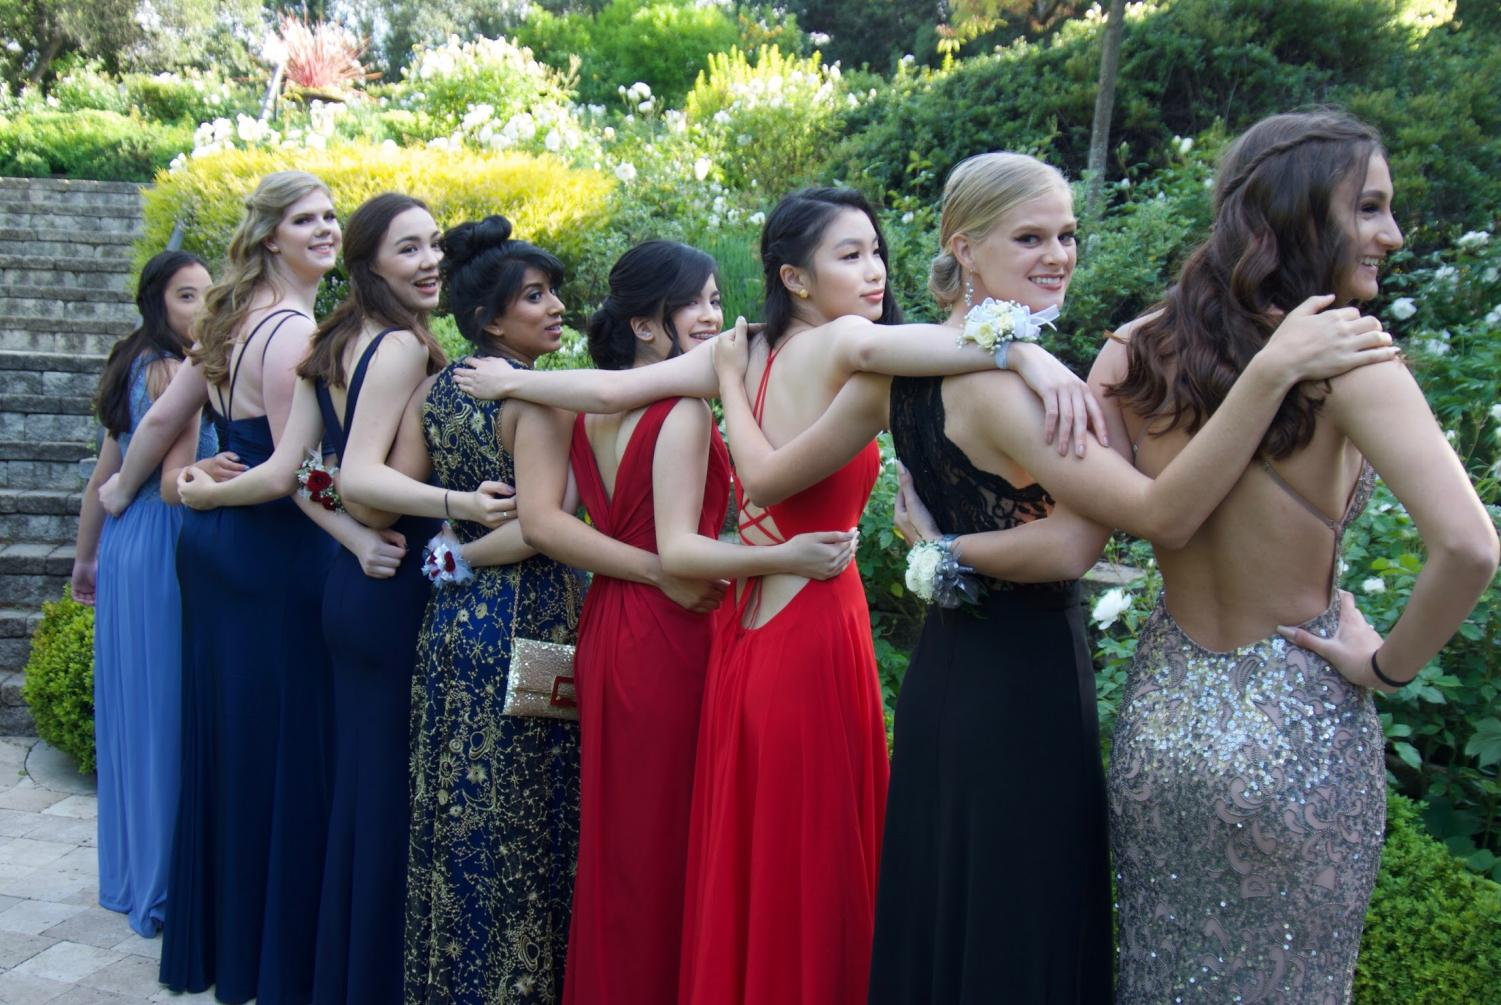 Several Mavericks have a photo shoot before going to prom.